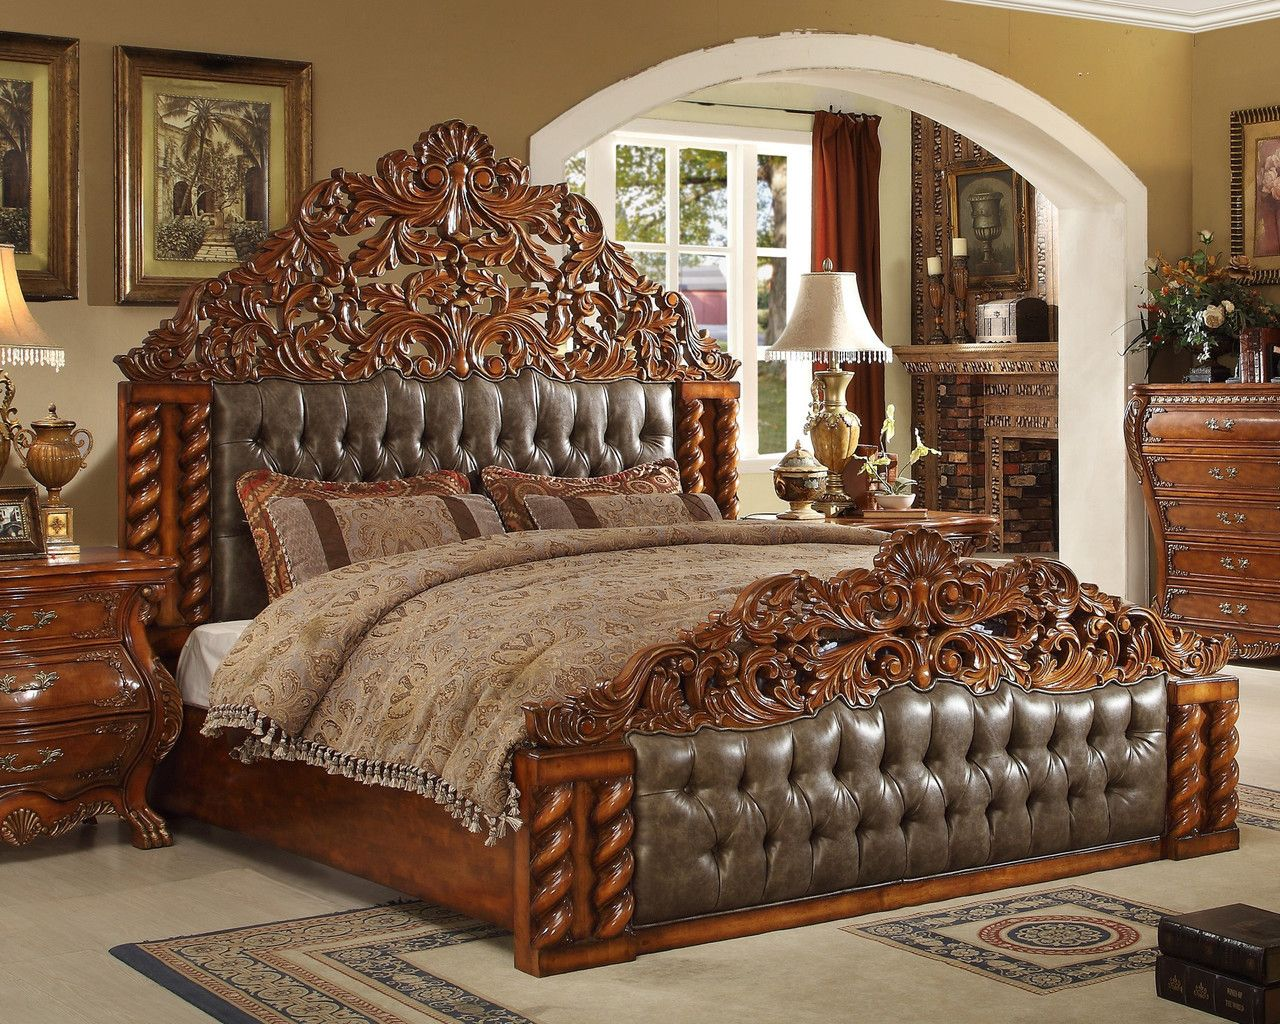 Homey Design Hd 20131 Victorian European Cal King Bed King Bedroom Sets Victorian Bed Luxurious Bedrooms